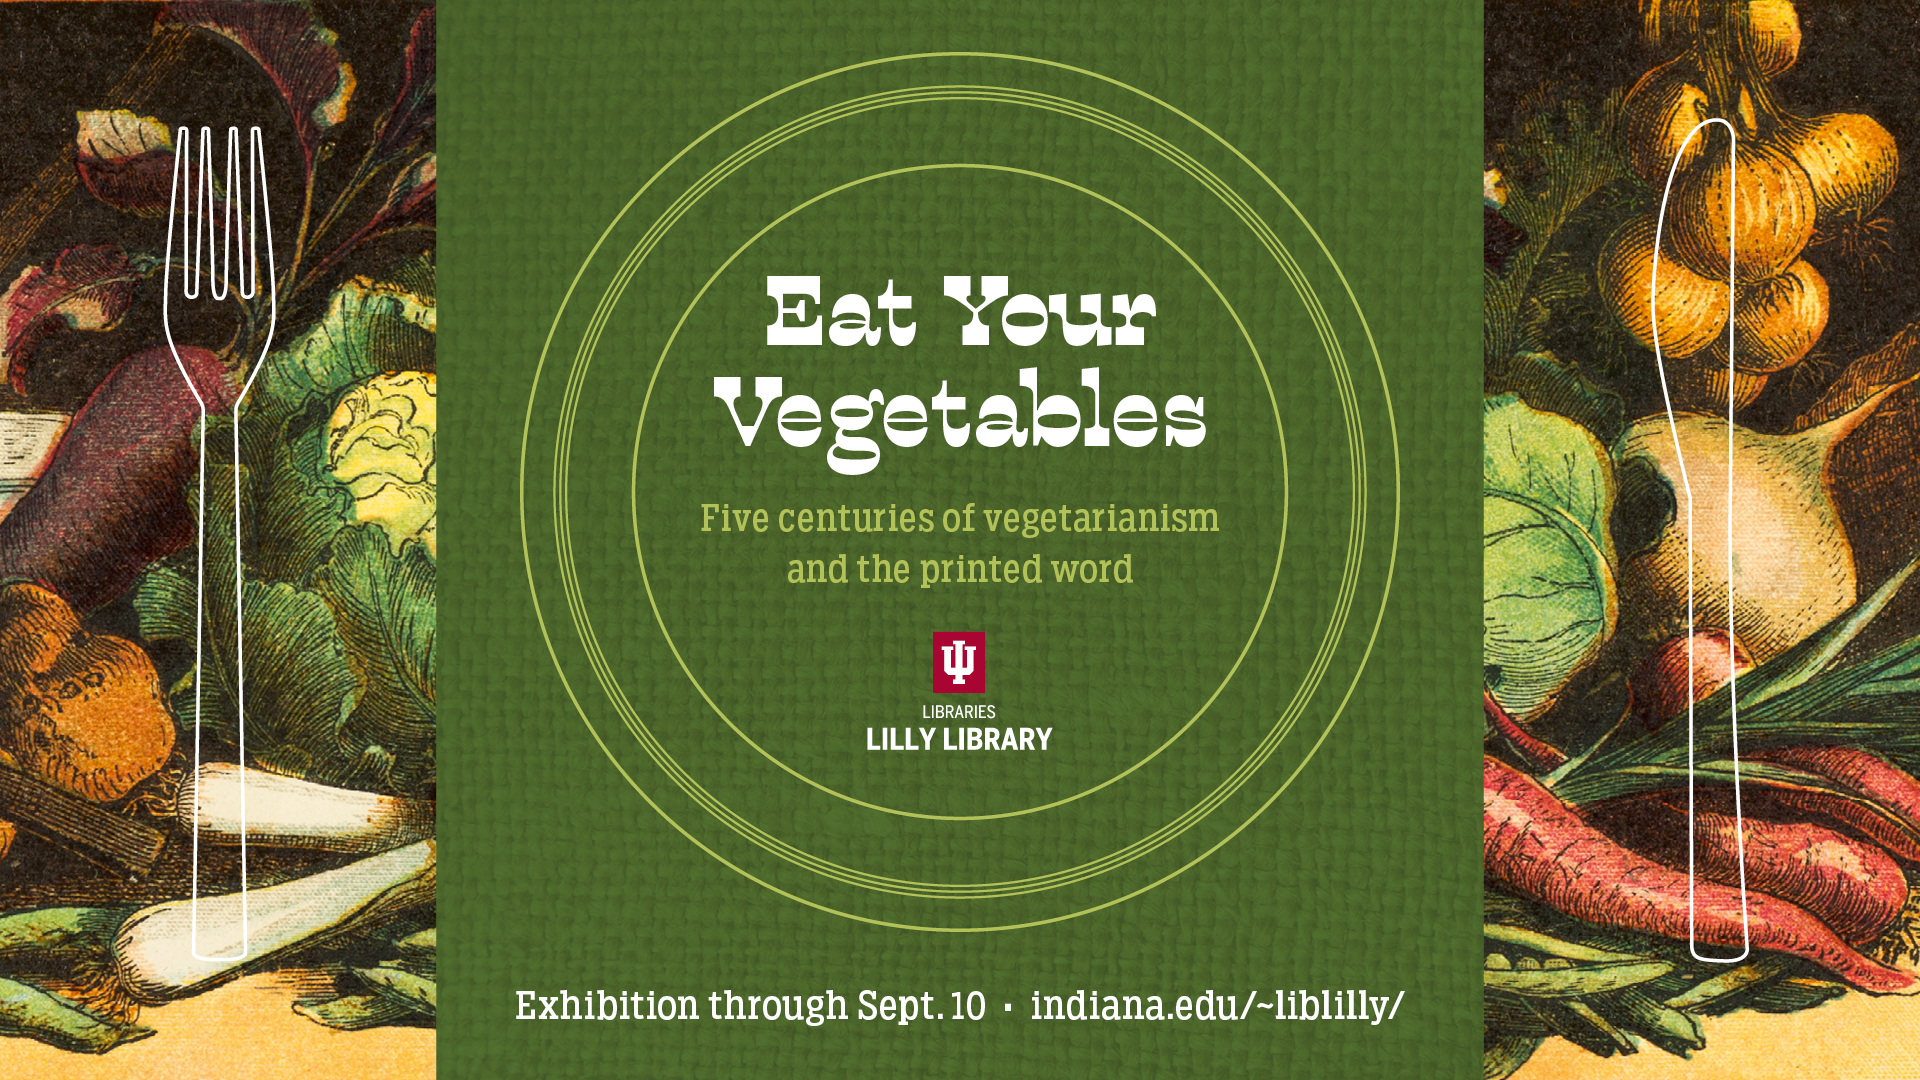 Eat Your Vegetables: Five centuries of vegetarianism and the printed word.